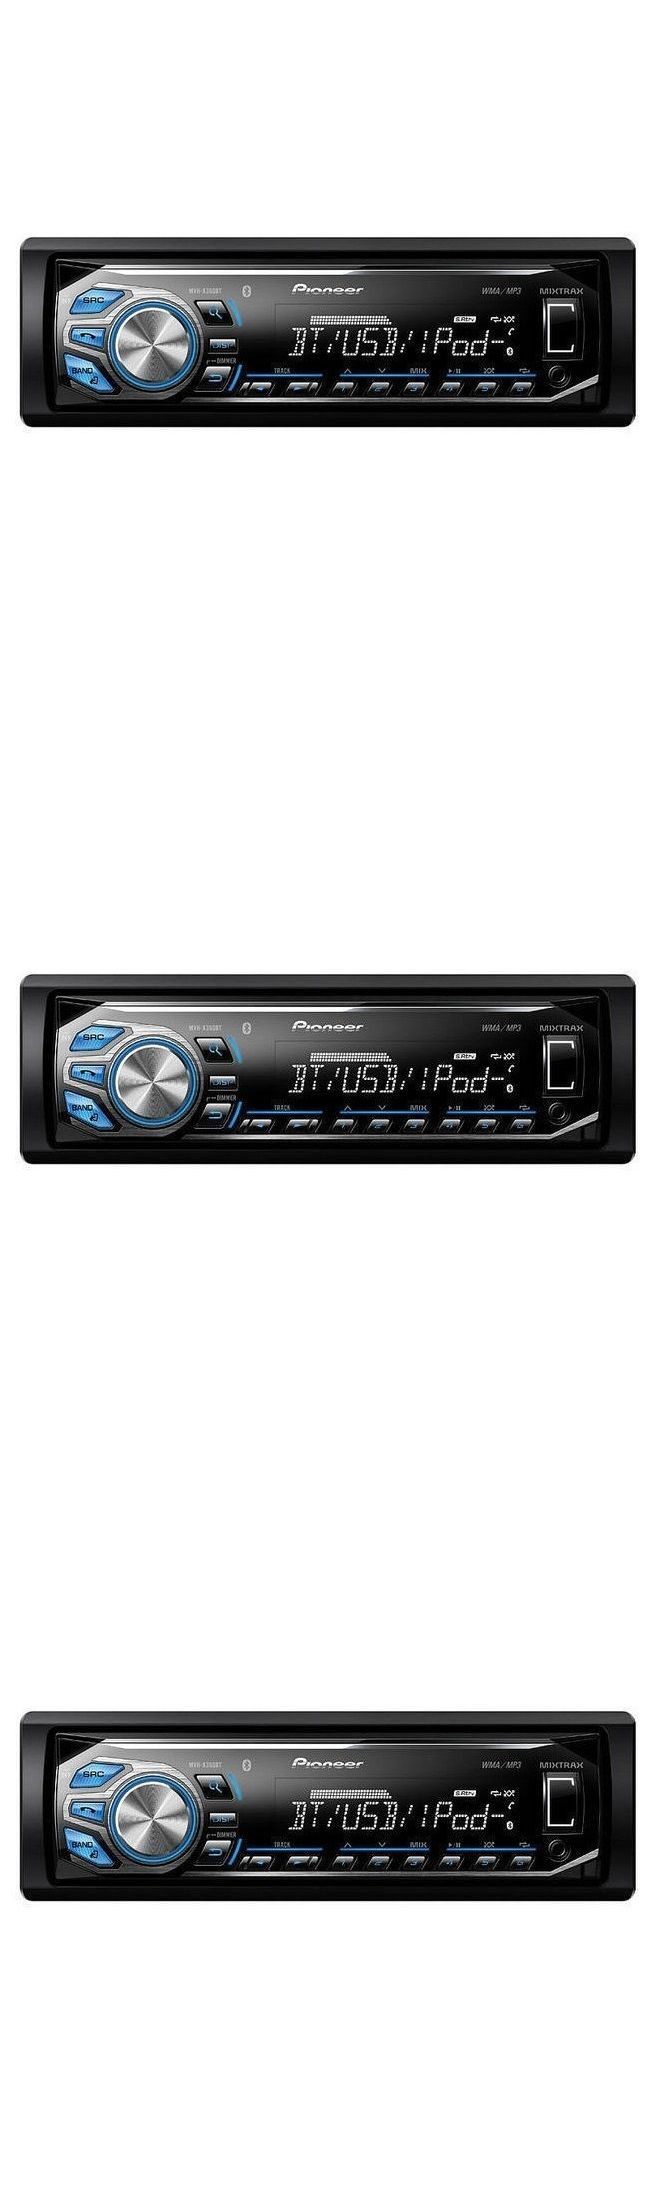 Car Audio In-Dash Units: Pioneer Car Stereo Head Unit Aux Usb Mp3 Bluetooth Radio Digital Media Player BUY IT NOW ONLY: $79.95